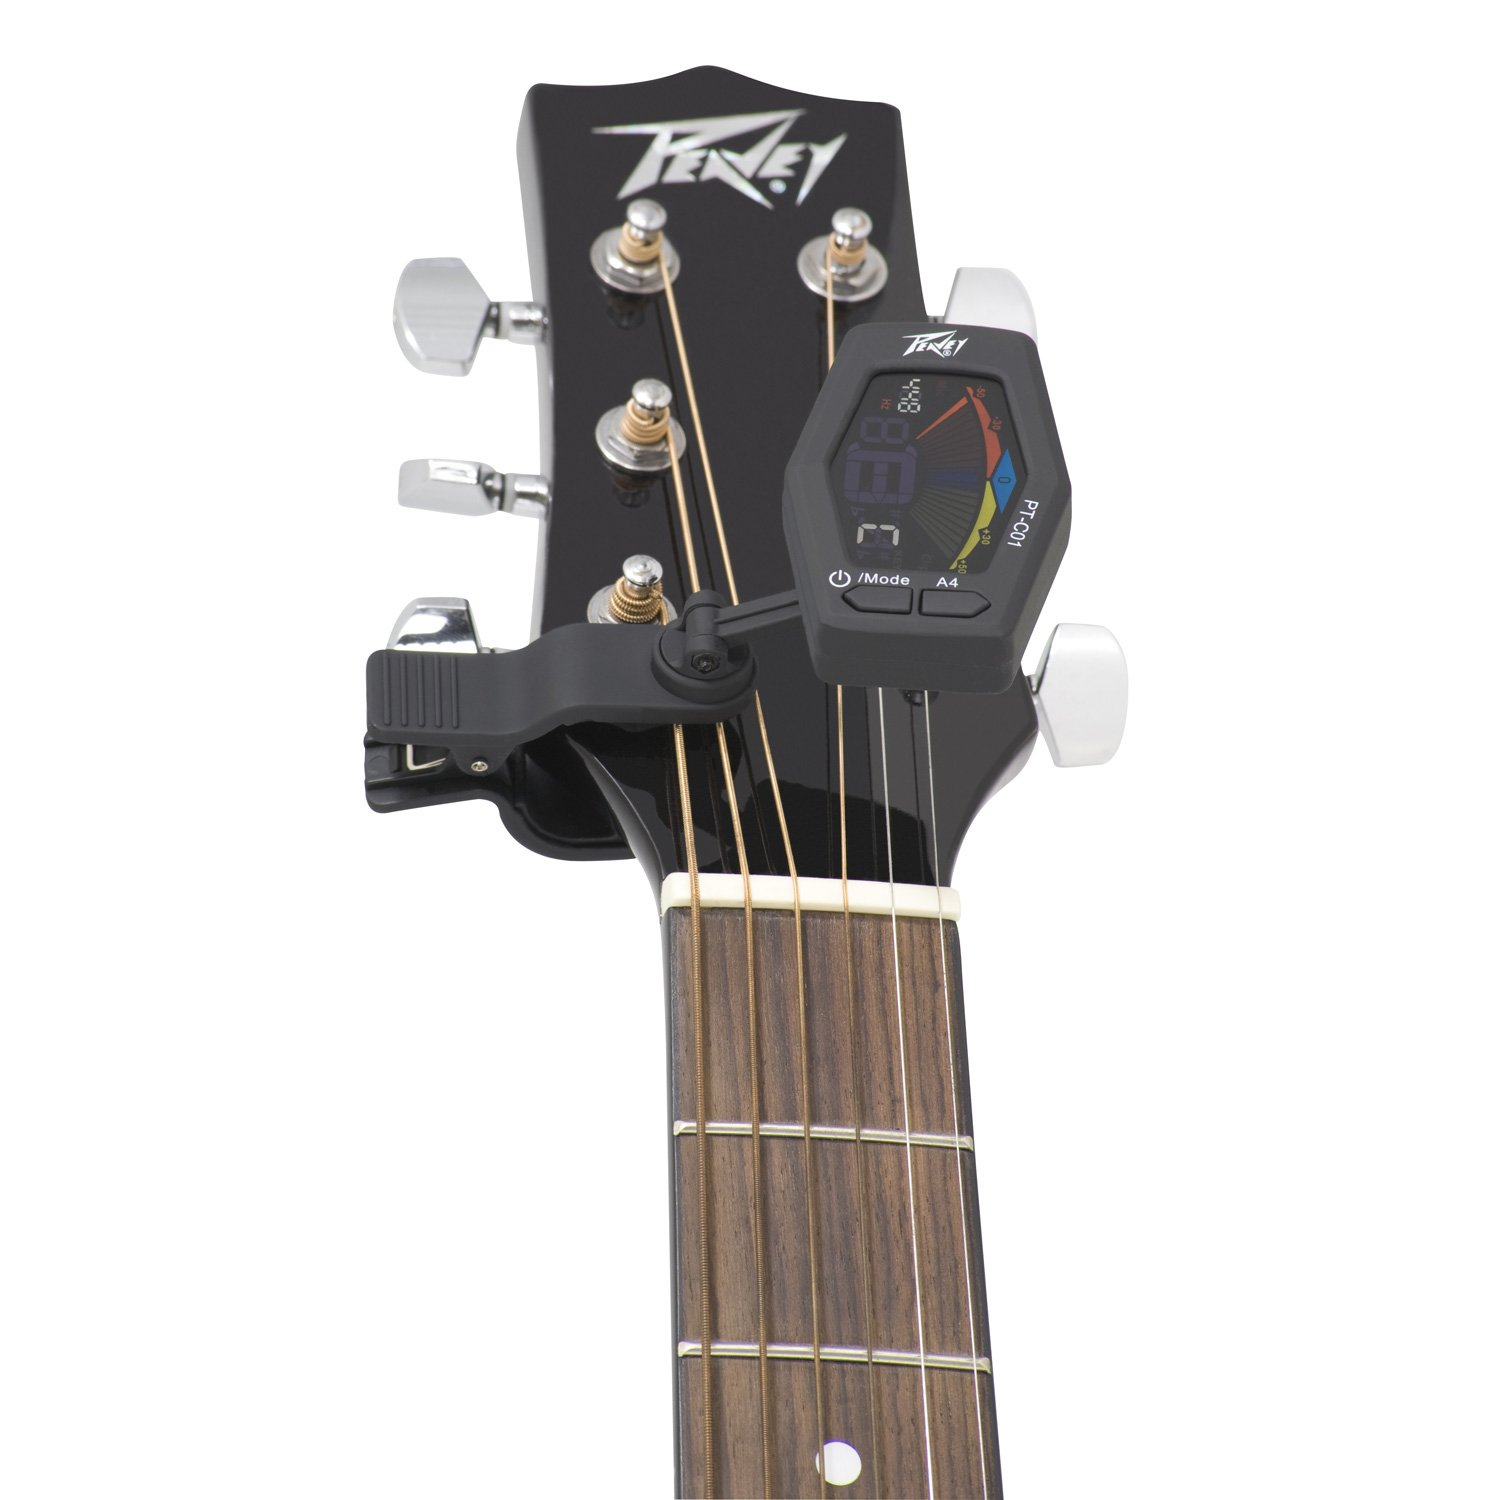 Amazon 34 peavey standard acoustic guitar and chord buddy amazon 34 peavey standard acoustic guitar and chord buddy toys games hexwebz Image collections